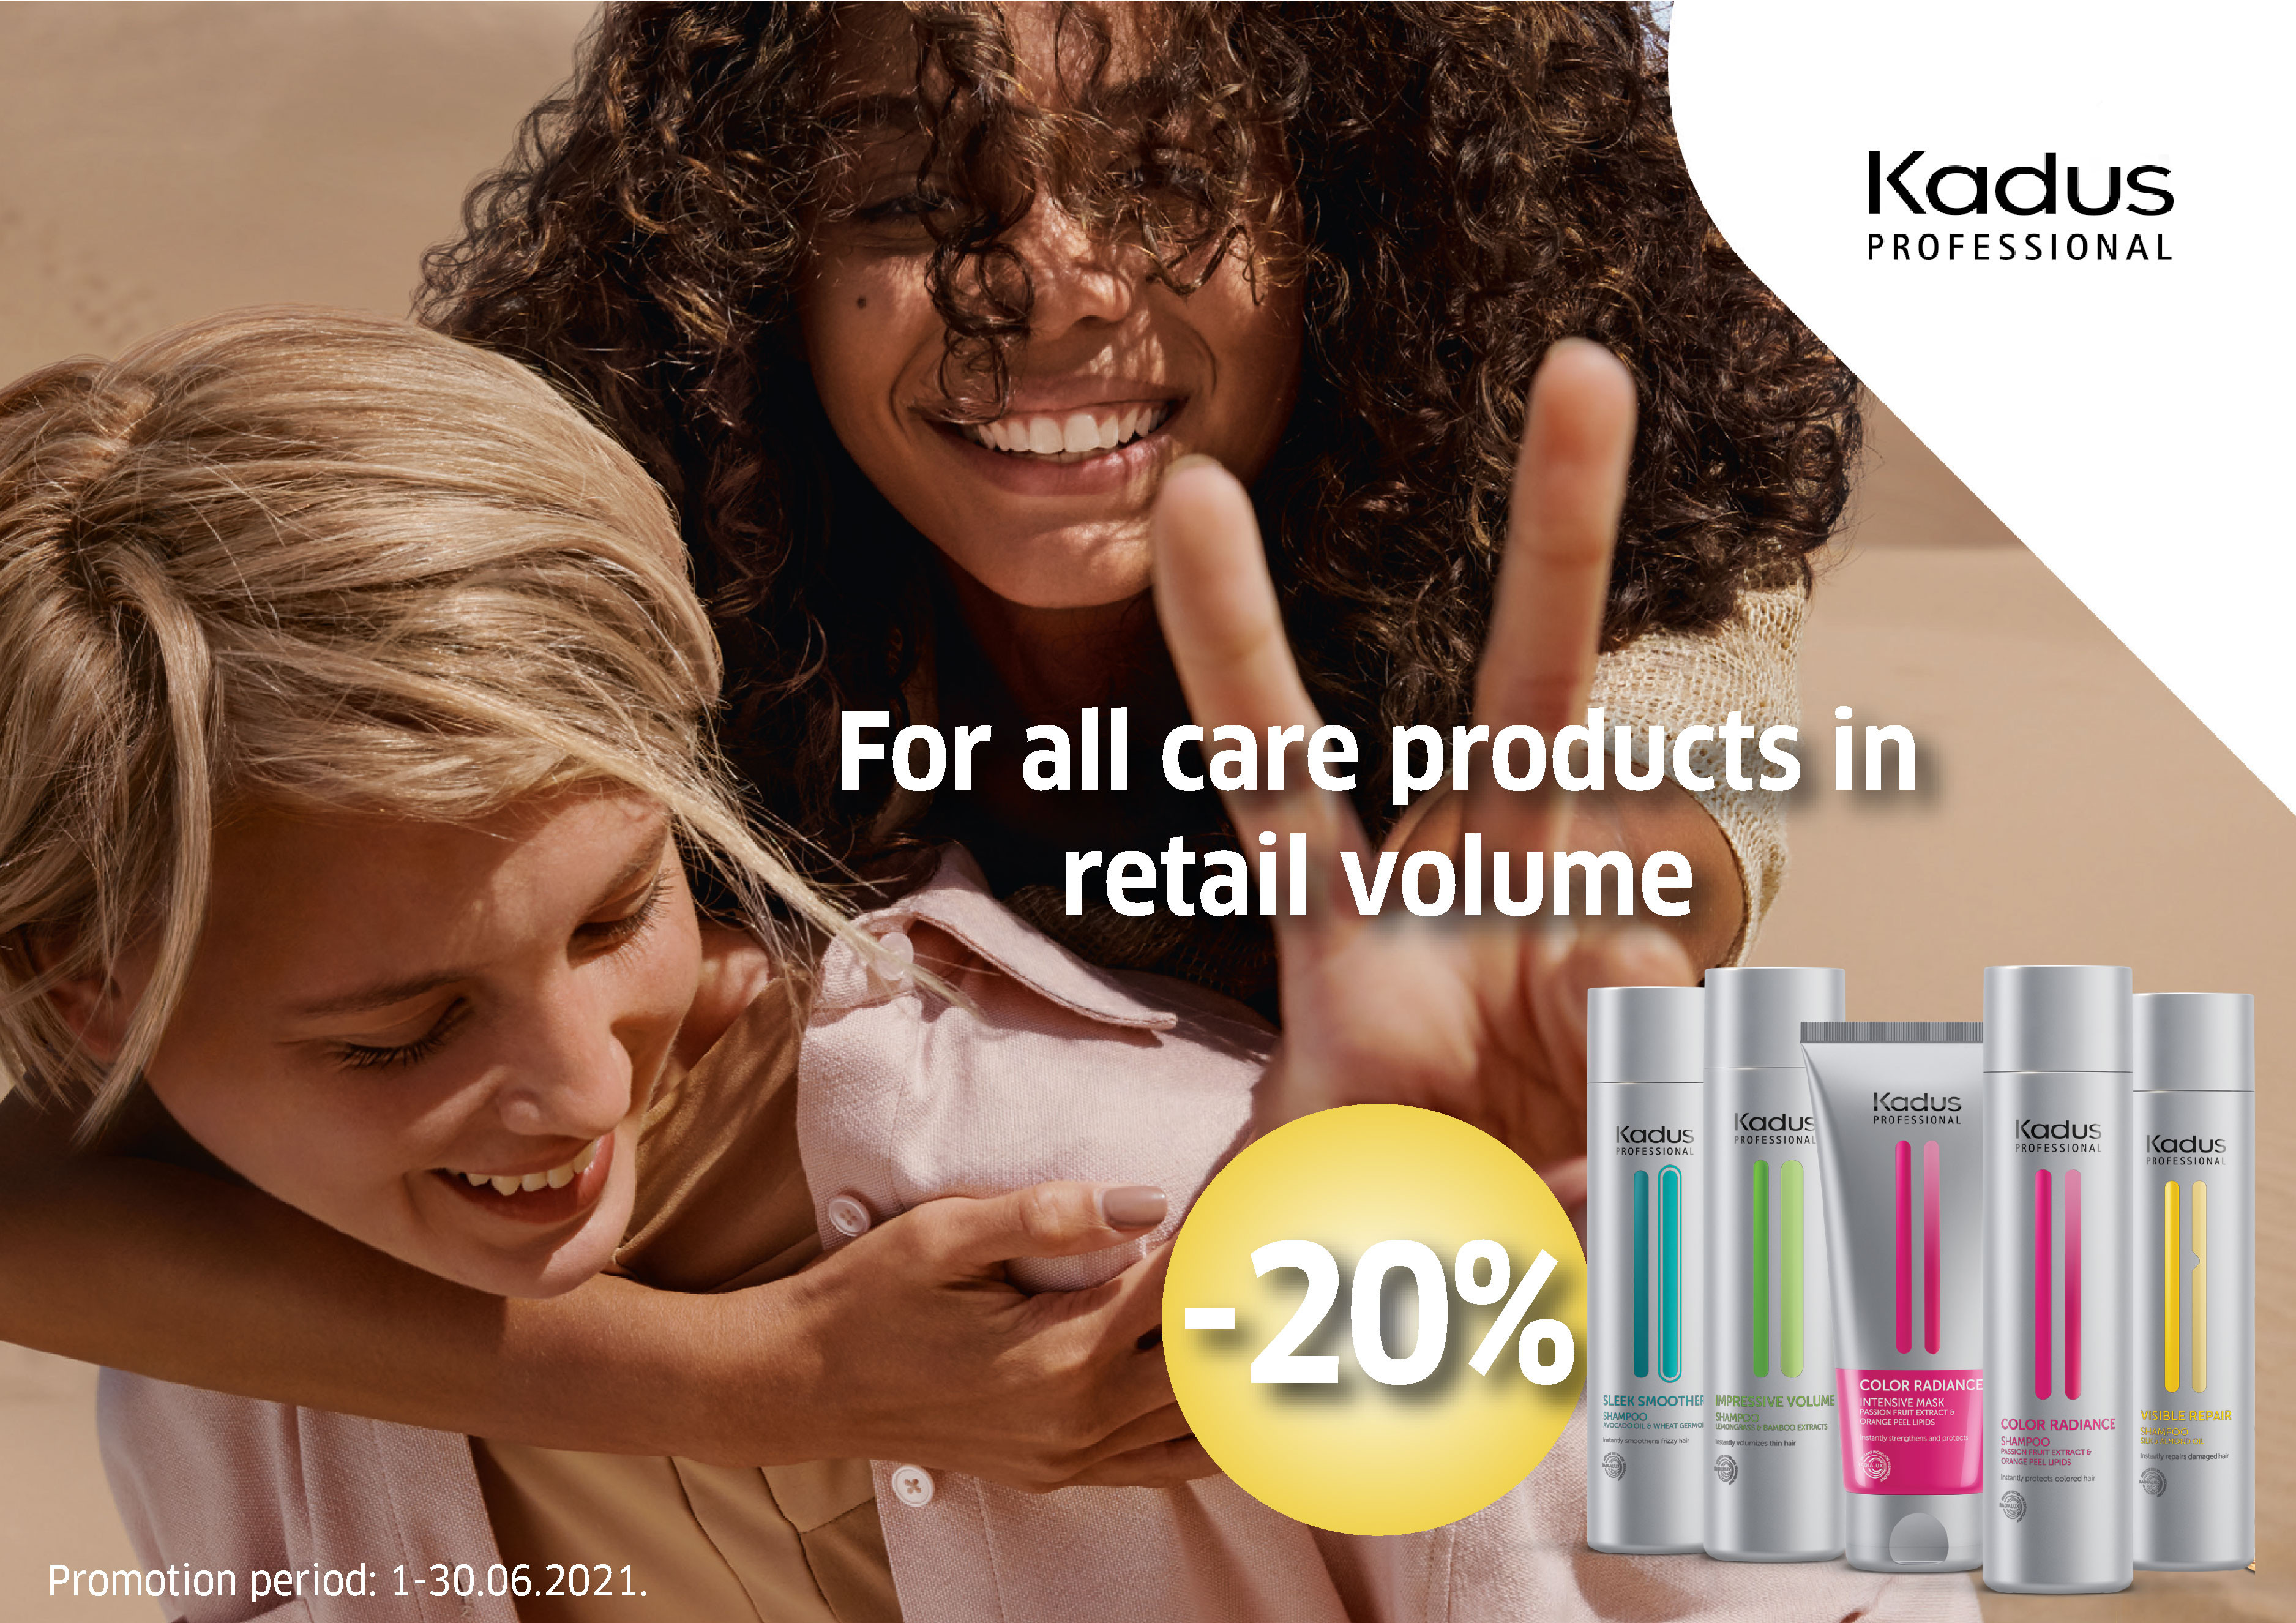 Special prices for KADUS products